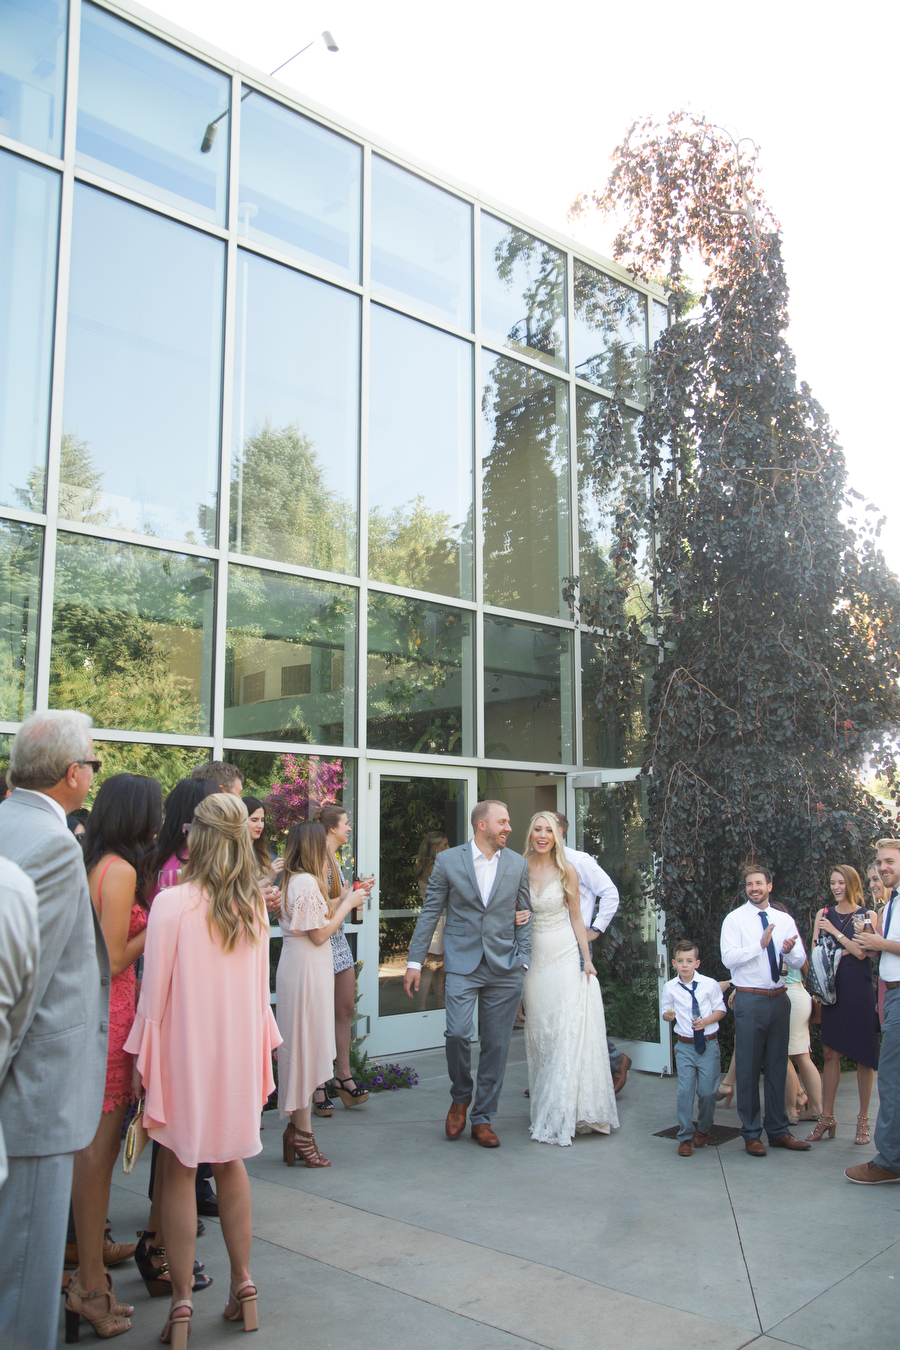 MARIACORONAPHOTOGRAPHY_WEDDING_UTAH_0237.JPG